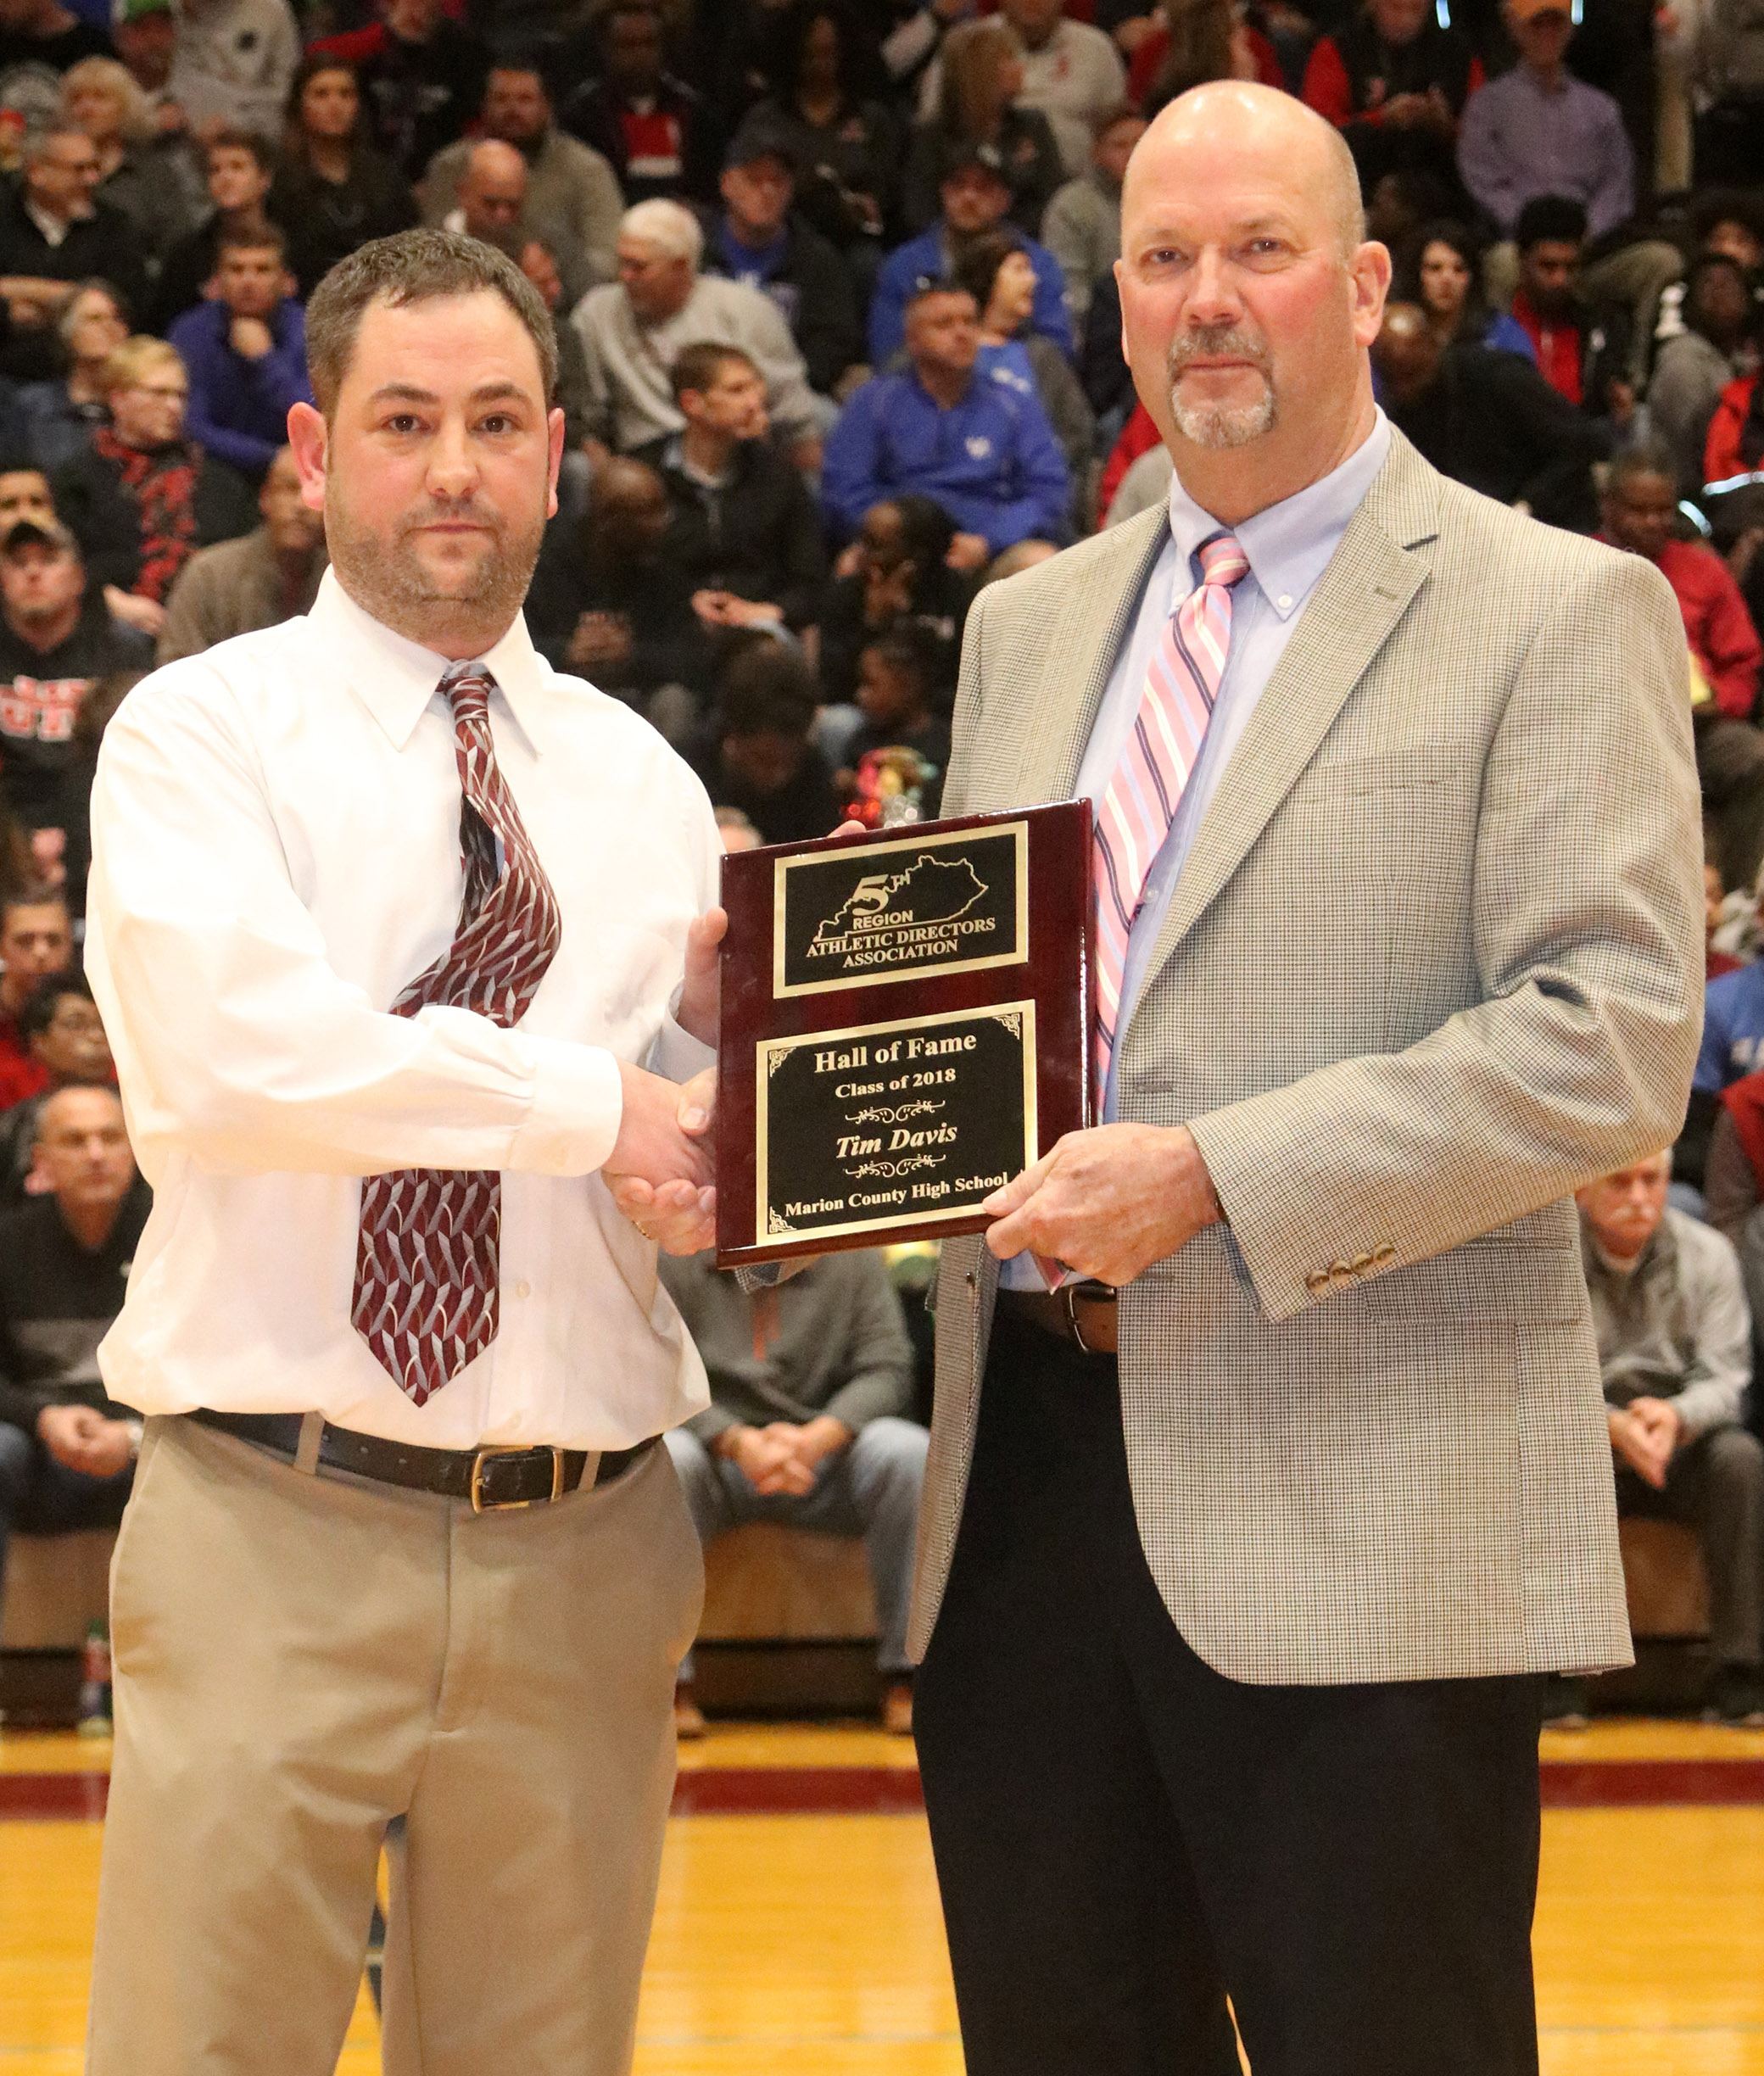 CHS boys' basketball head coach Tim Davis, at right, was induced into the 5th Region Athletic Director's Hall of Fame in a special ceremony at Marion County High School on Tuesday, March 6. Michael Holt, athletic director at Marion County, made the presentation.